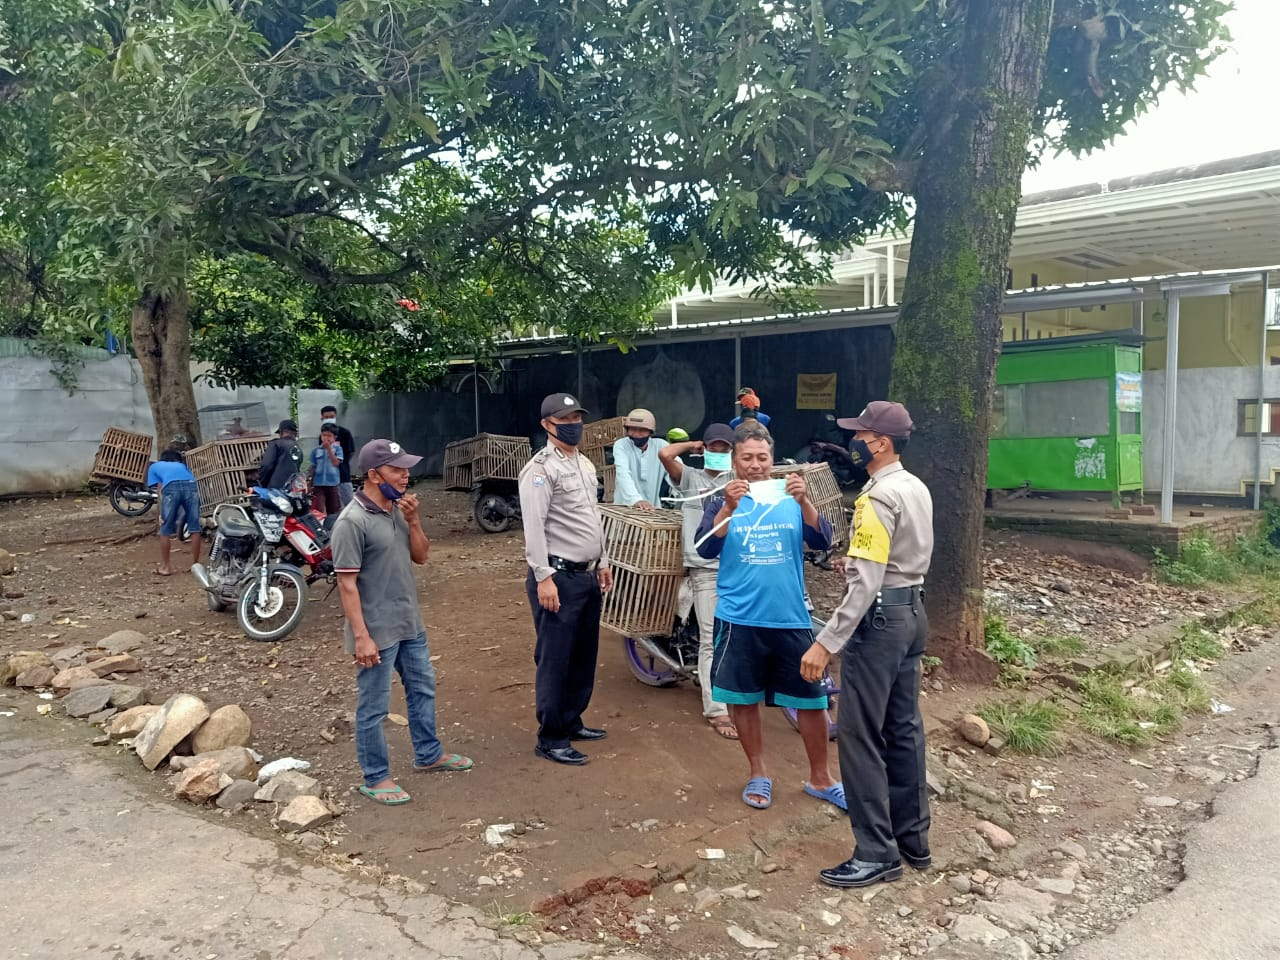 Distributing 20 Free Masks to Traders and Buyers of Poultry Market, Grogol Police Blusukan to the Market - POLRI PRIVATE DIVISION